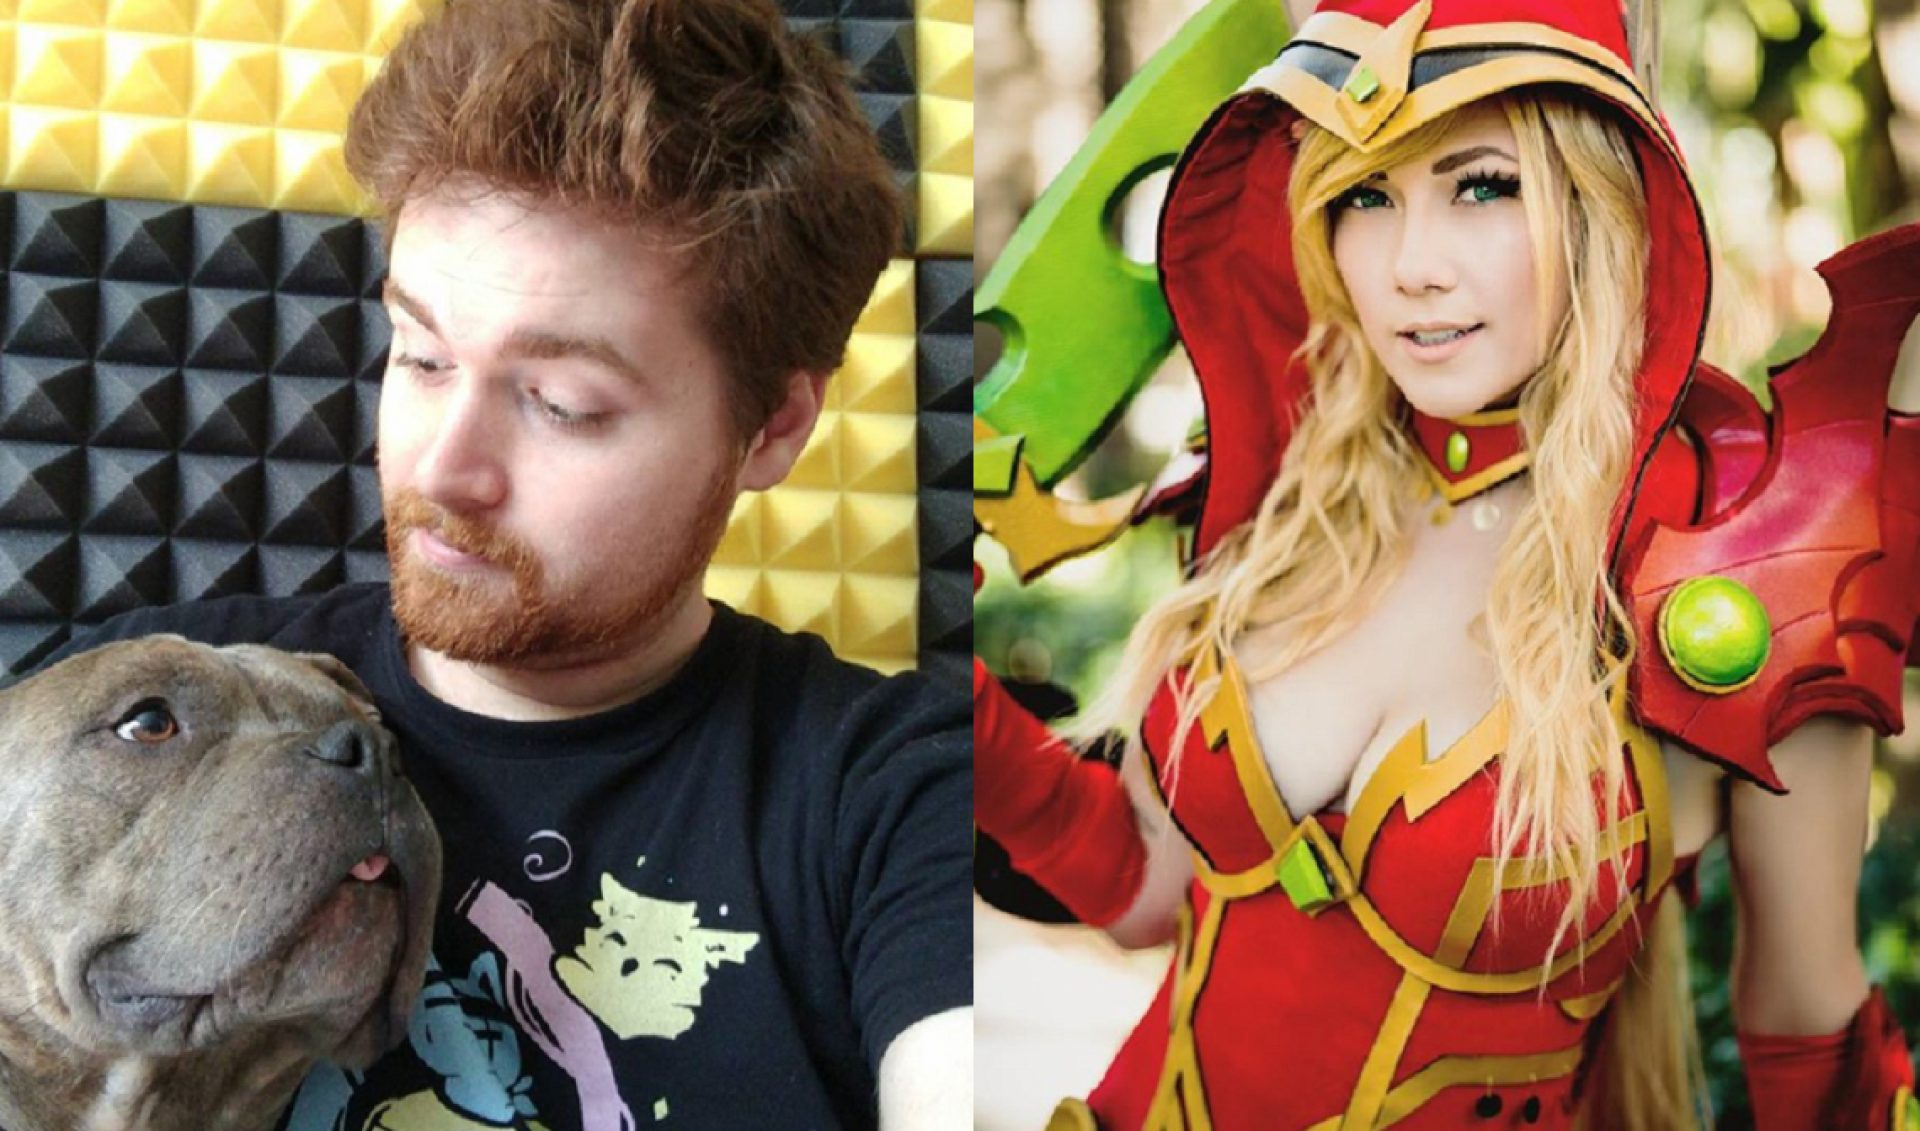 Channel Frederator Network Signs Gamers Mithzan And Lindsay Elyse